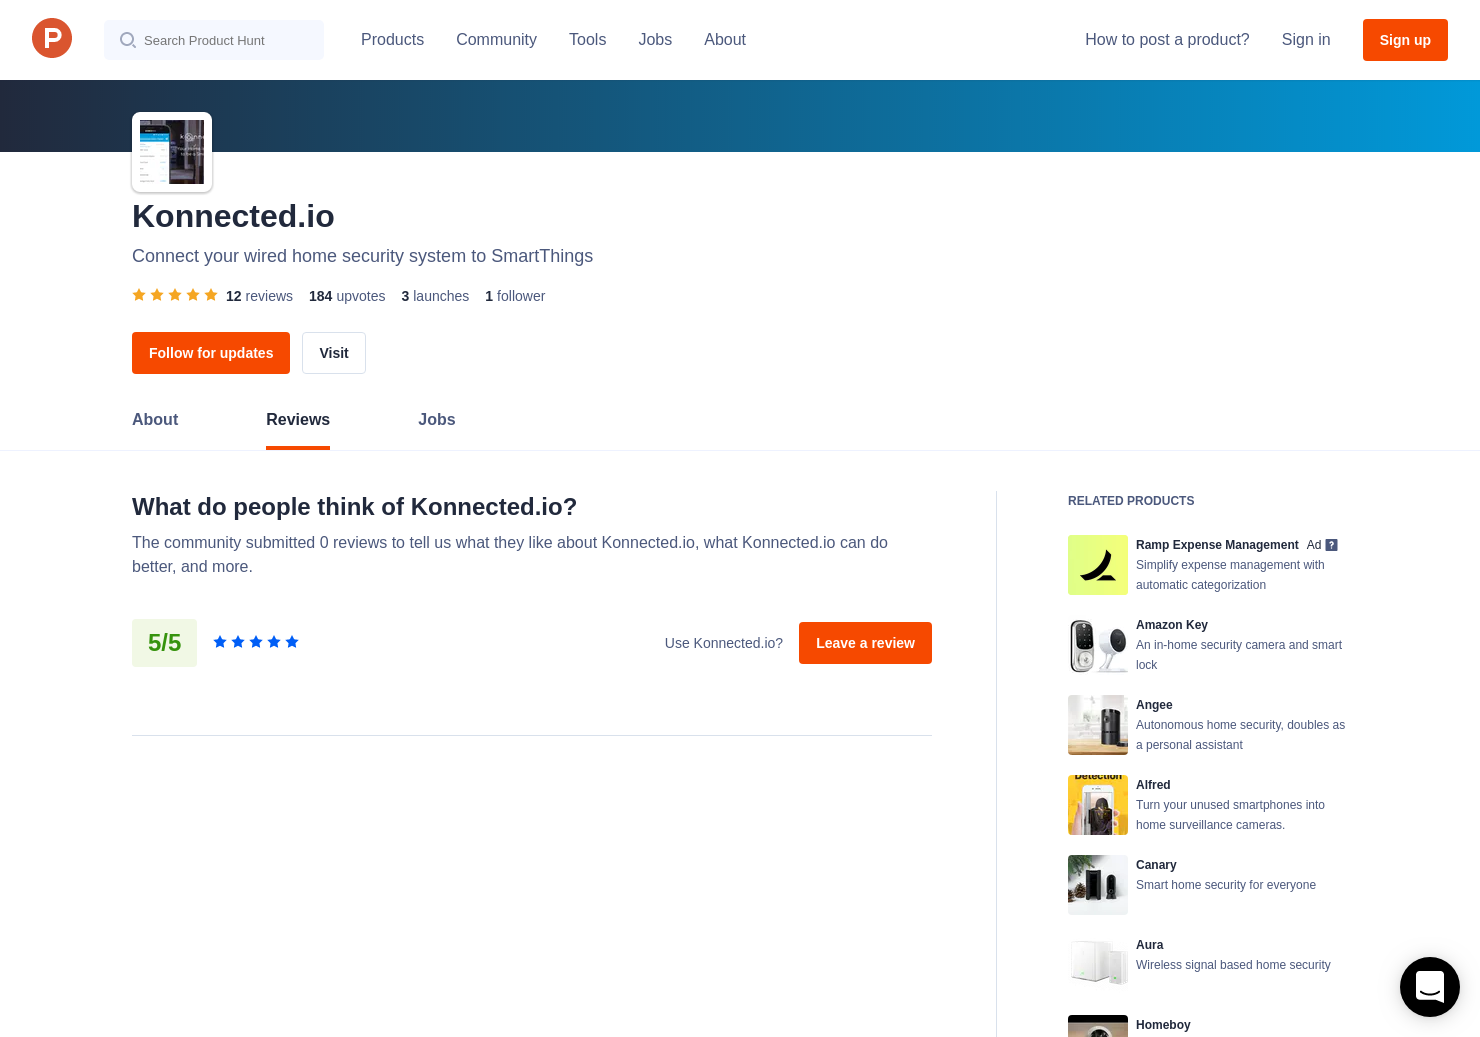 Konnected.io Reviews on Product Hunt